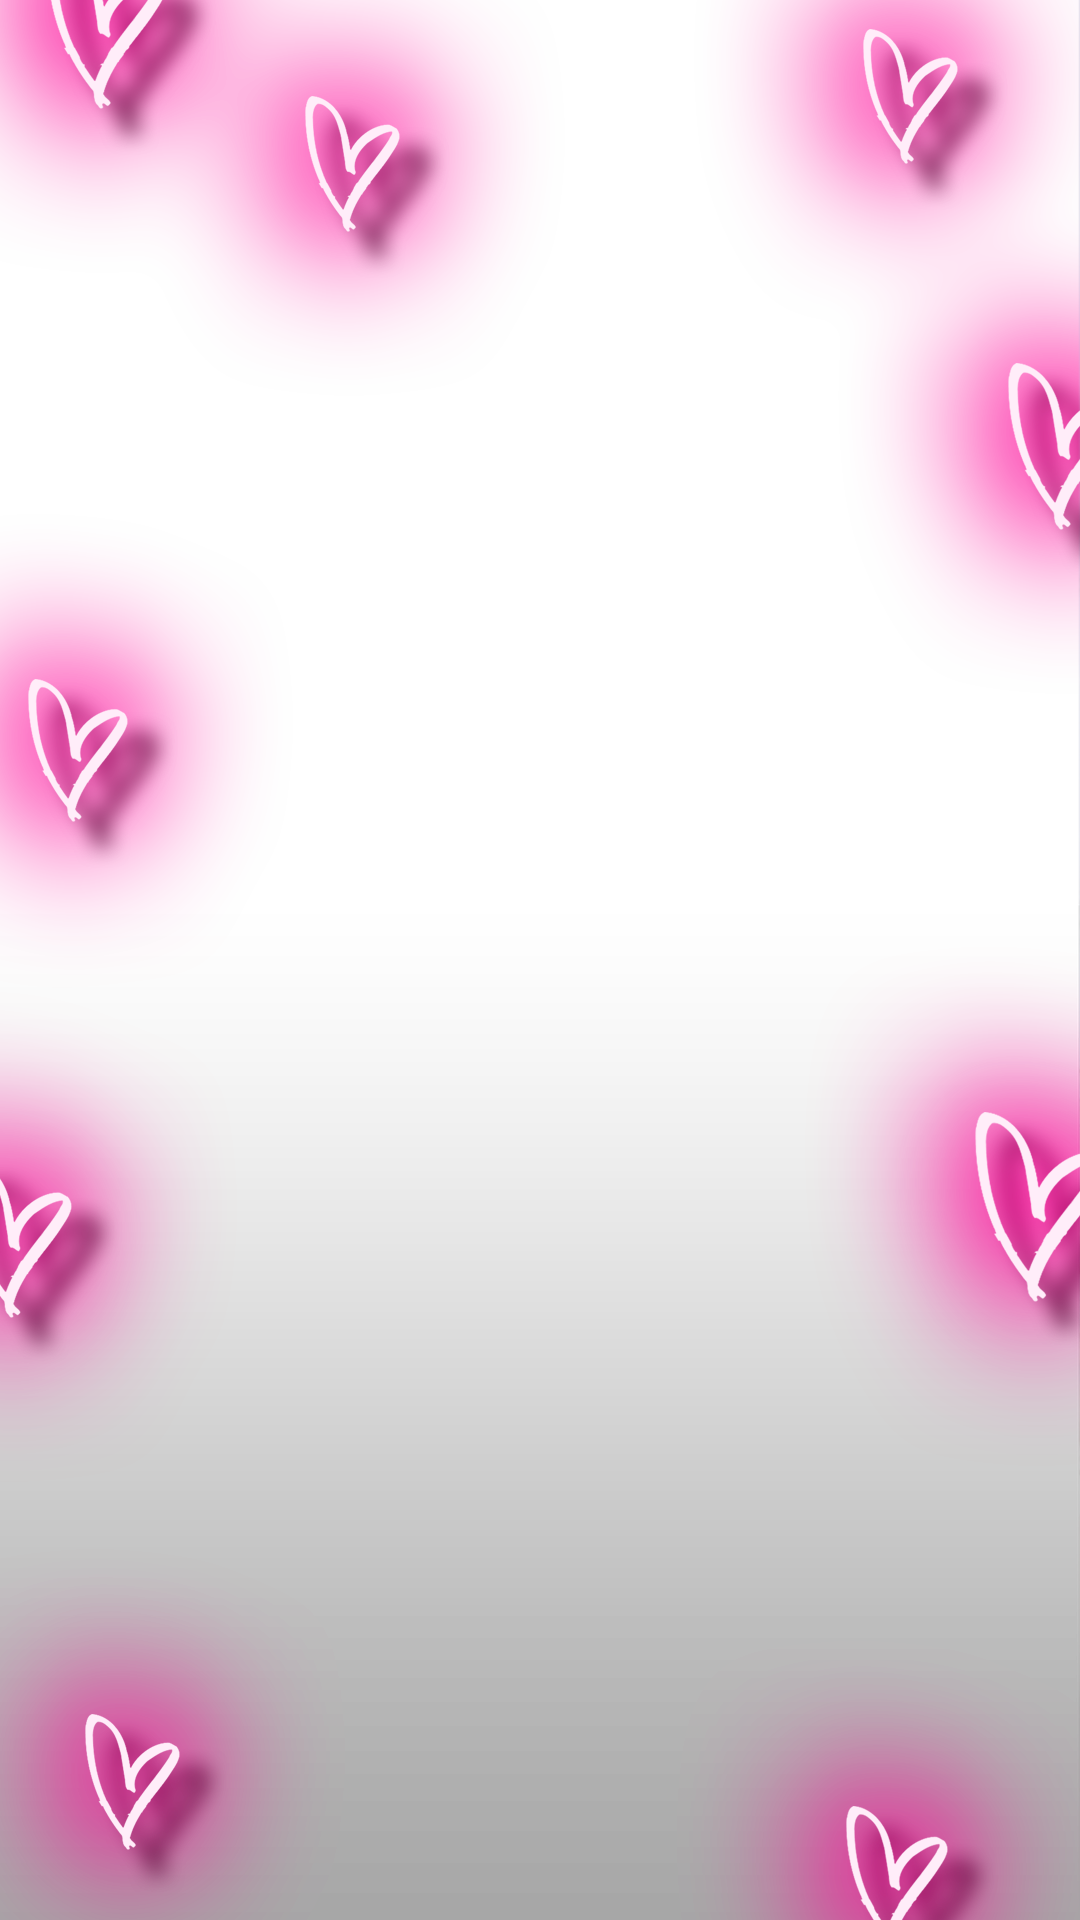 Neon heart png. Hearts wedding snapchat filter